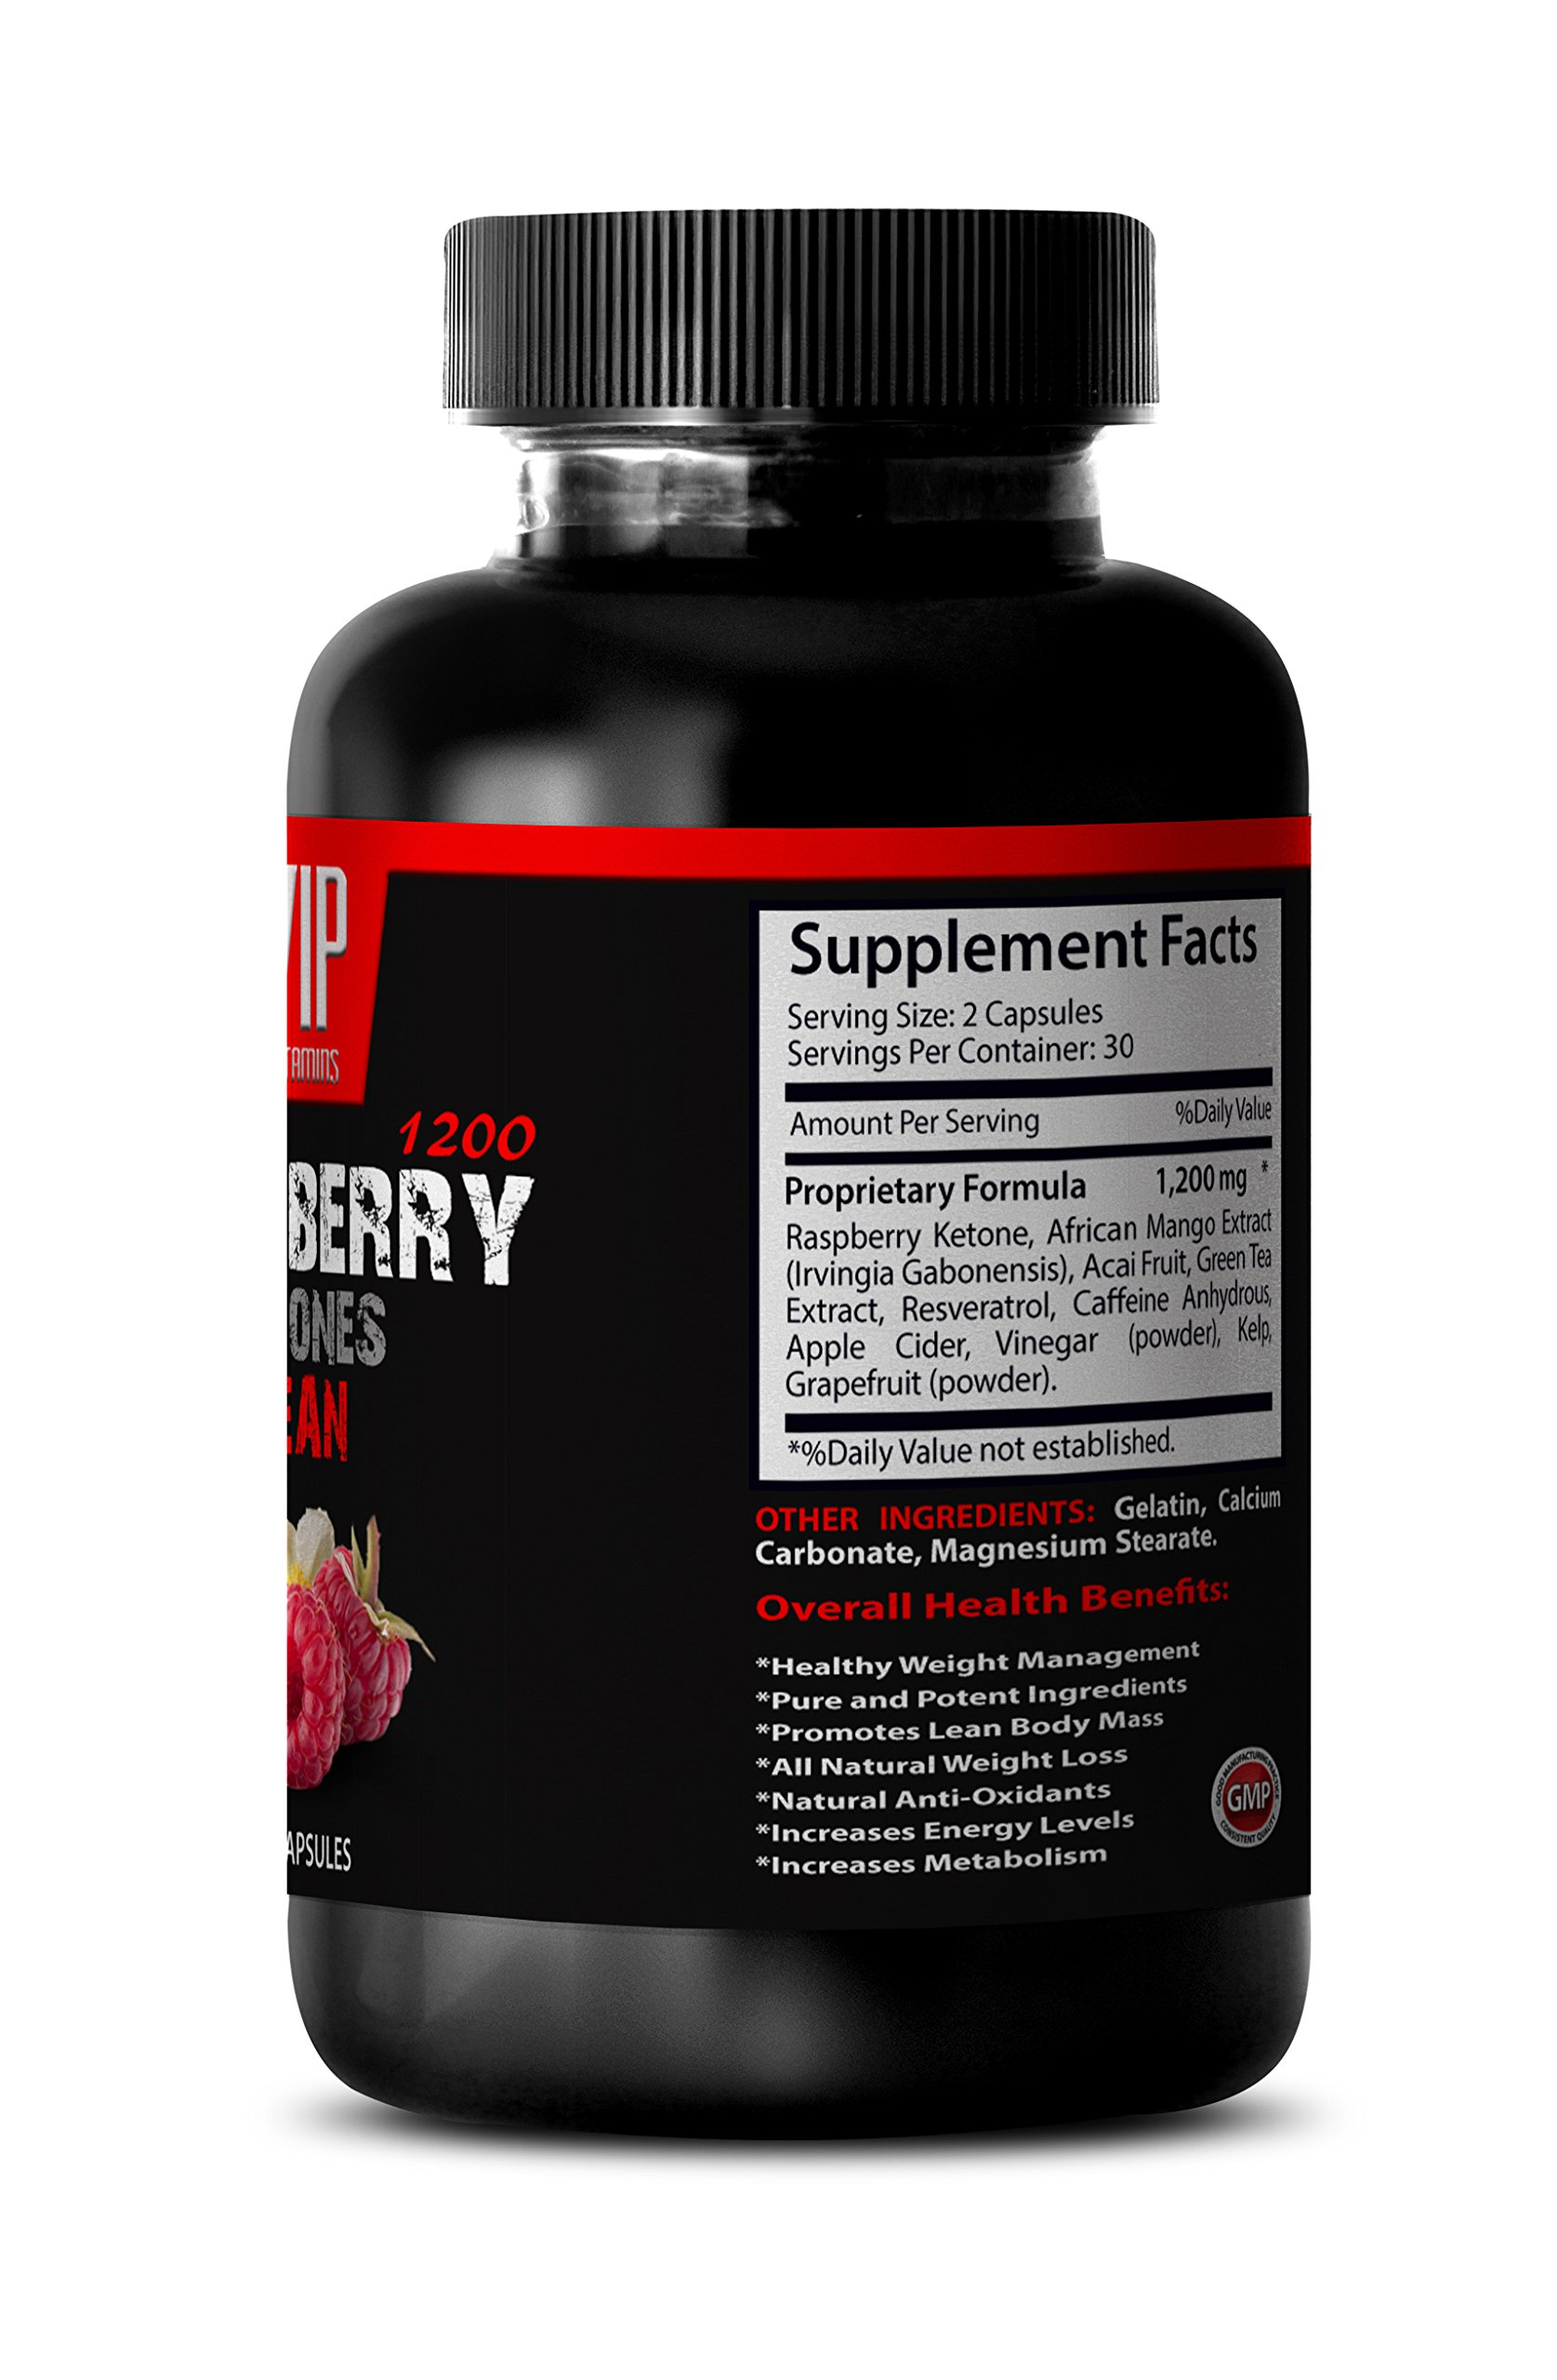 Blood sugar support supplements - RASPBERRY KETONES LEAN 1200 EXTRACT - Blood sugar support supplements - 6 Bottles 360 Capsules by VIP VITAMINS (Image #3)